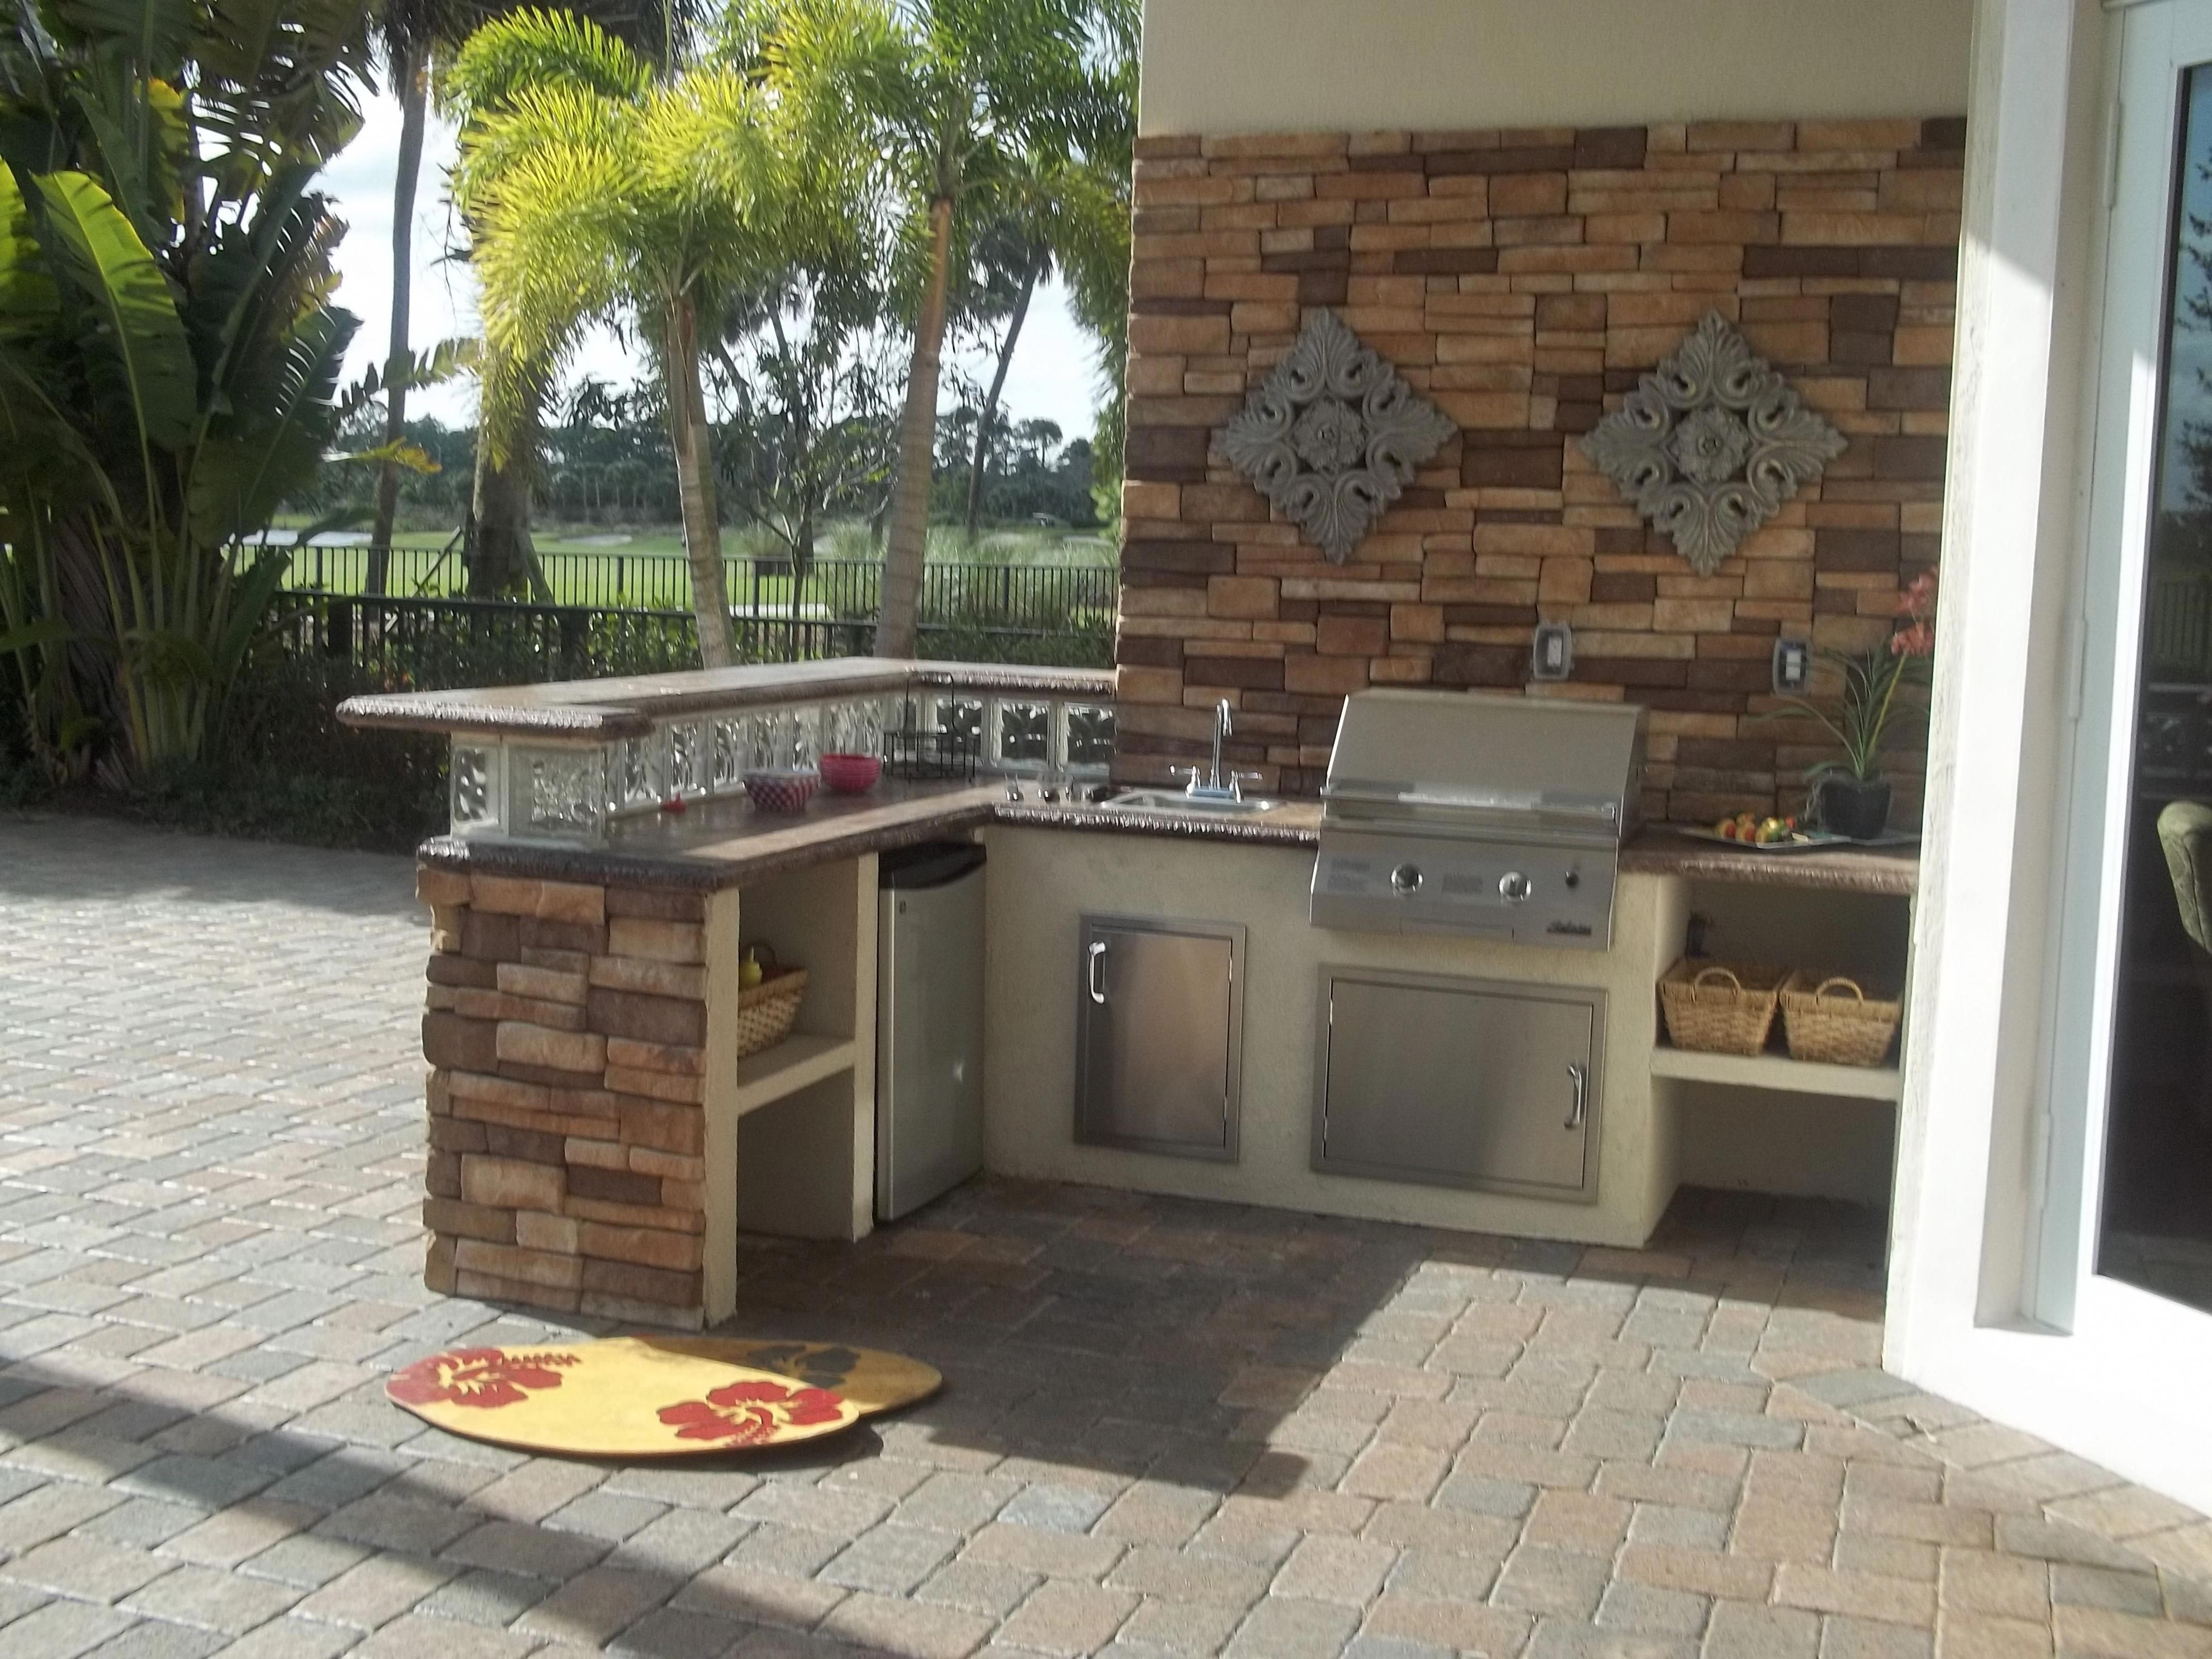 Rustic Summer Kitchen Ideas Visi Small Outdoor Kitchens Diy Outdoor Kitchen Outdoor Kitchen Design